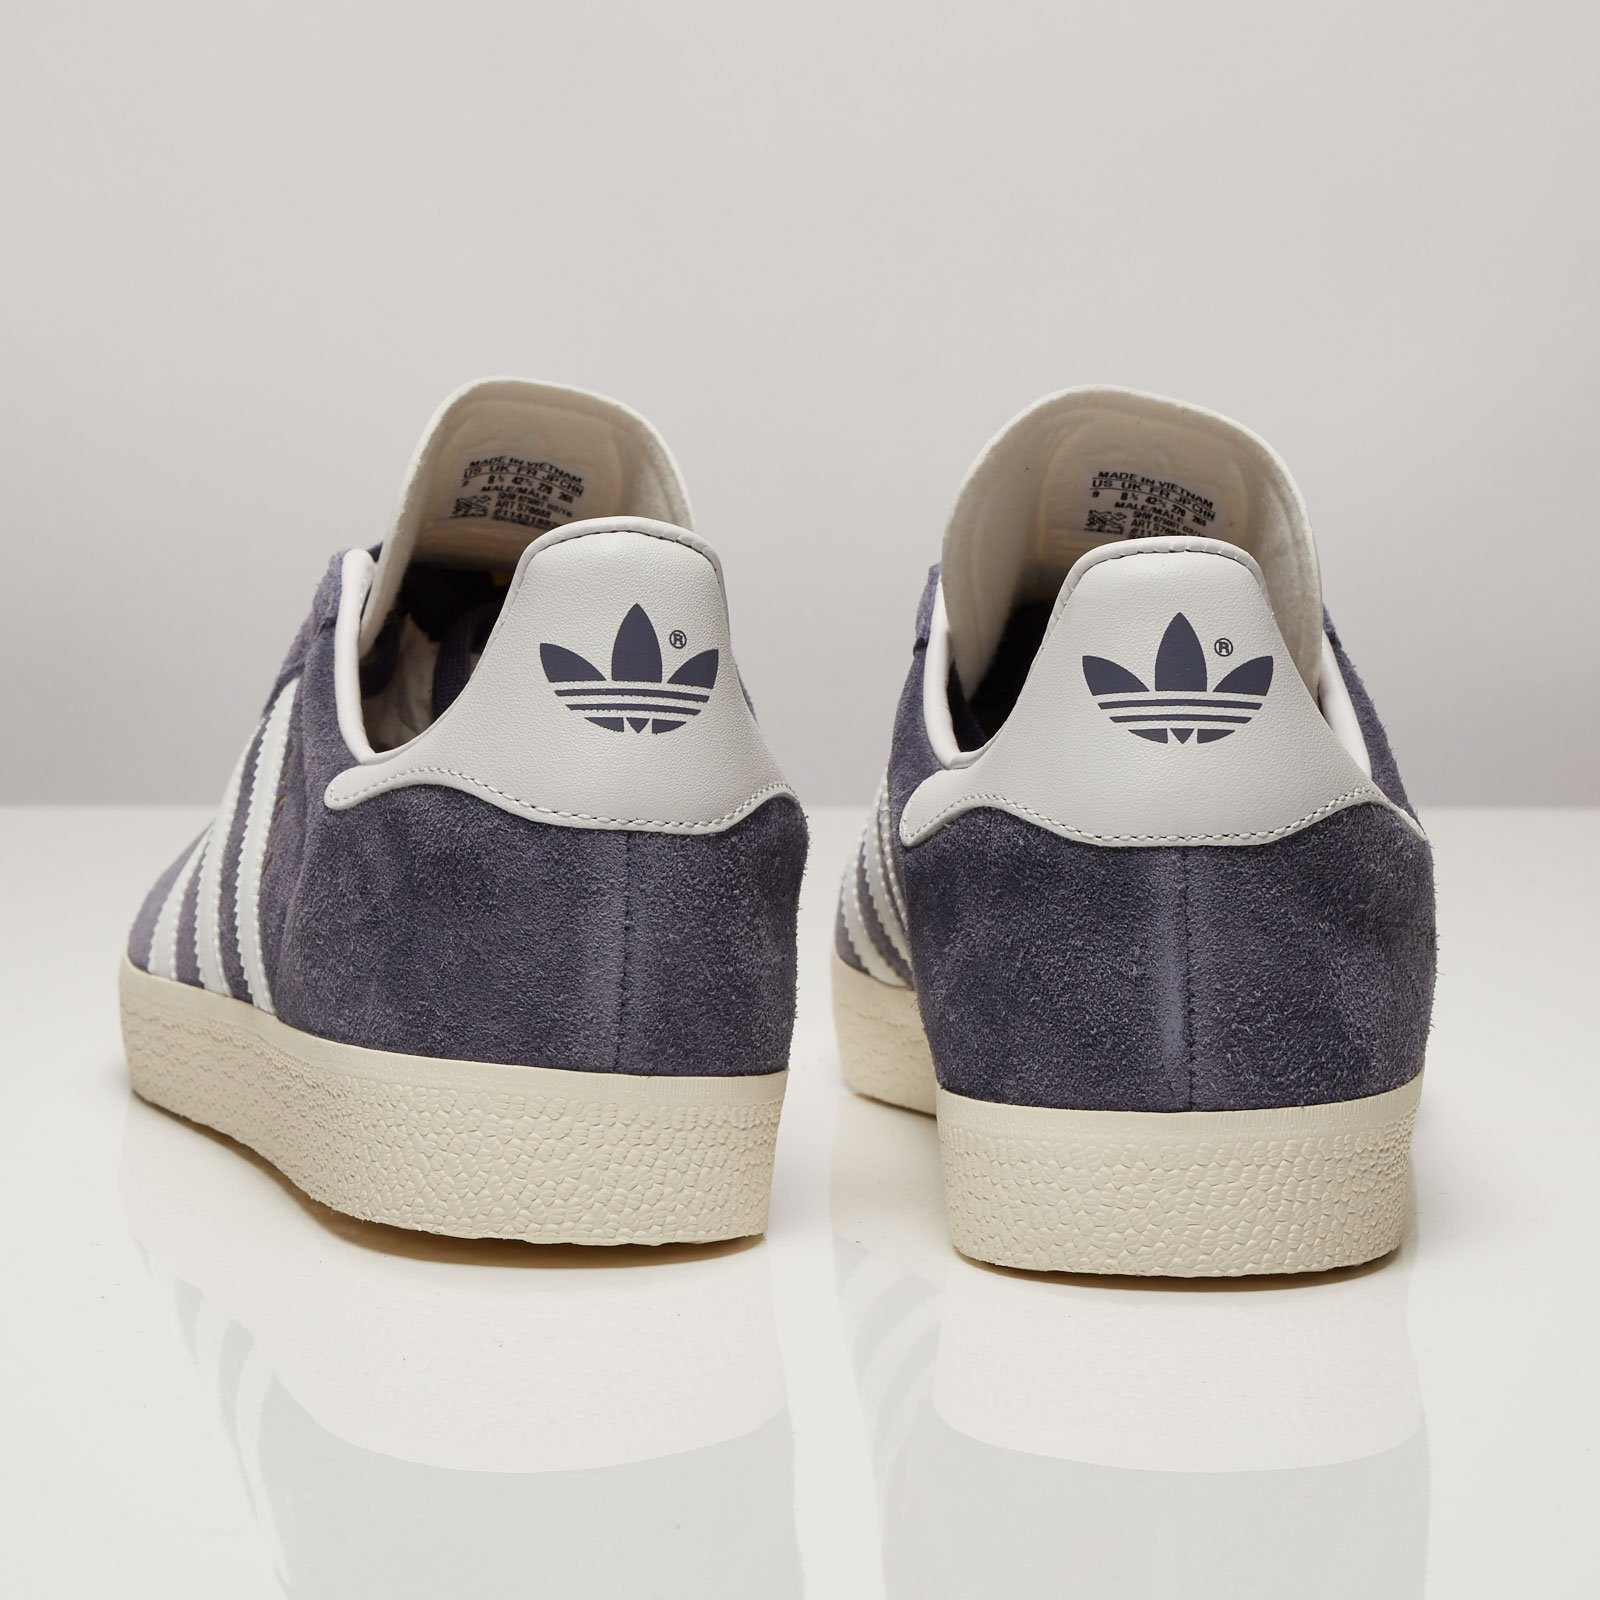 reputable site c4059 50d17 adidas Originals Gazelle adidas Originals Gazelle adidas Originals Gazelle  ...